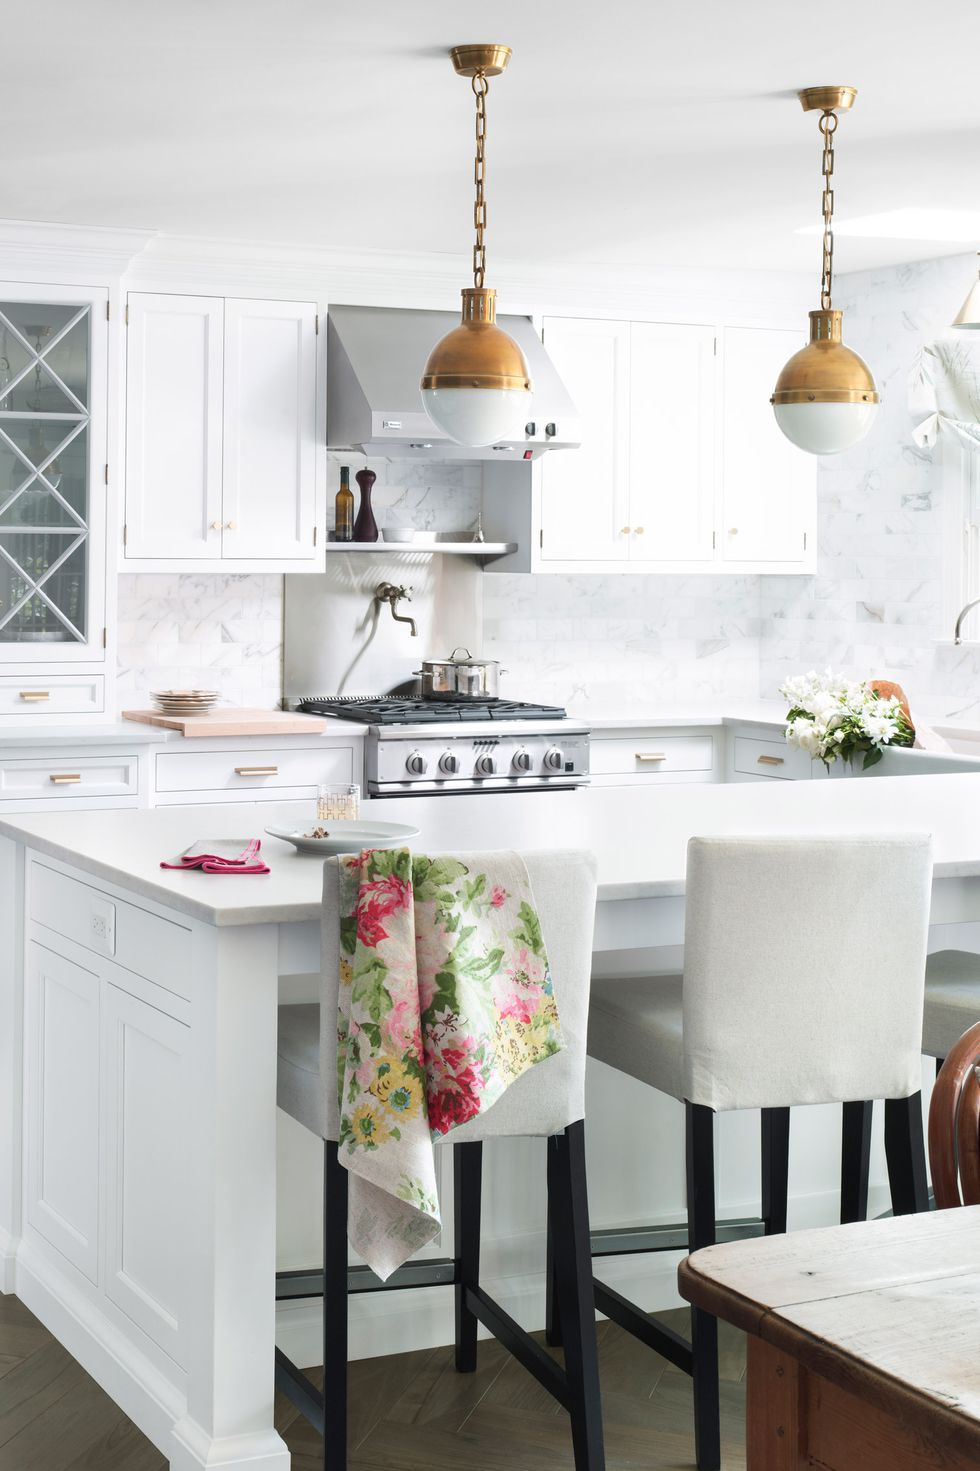 White kitchen cabinets with decor with gold lighting and floral accents